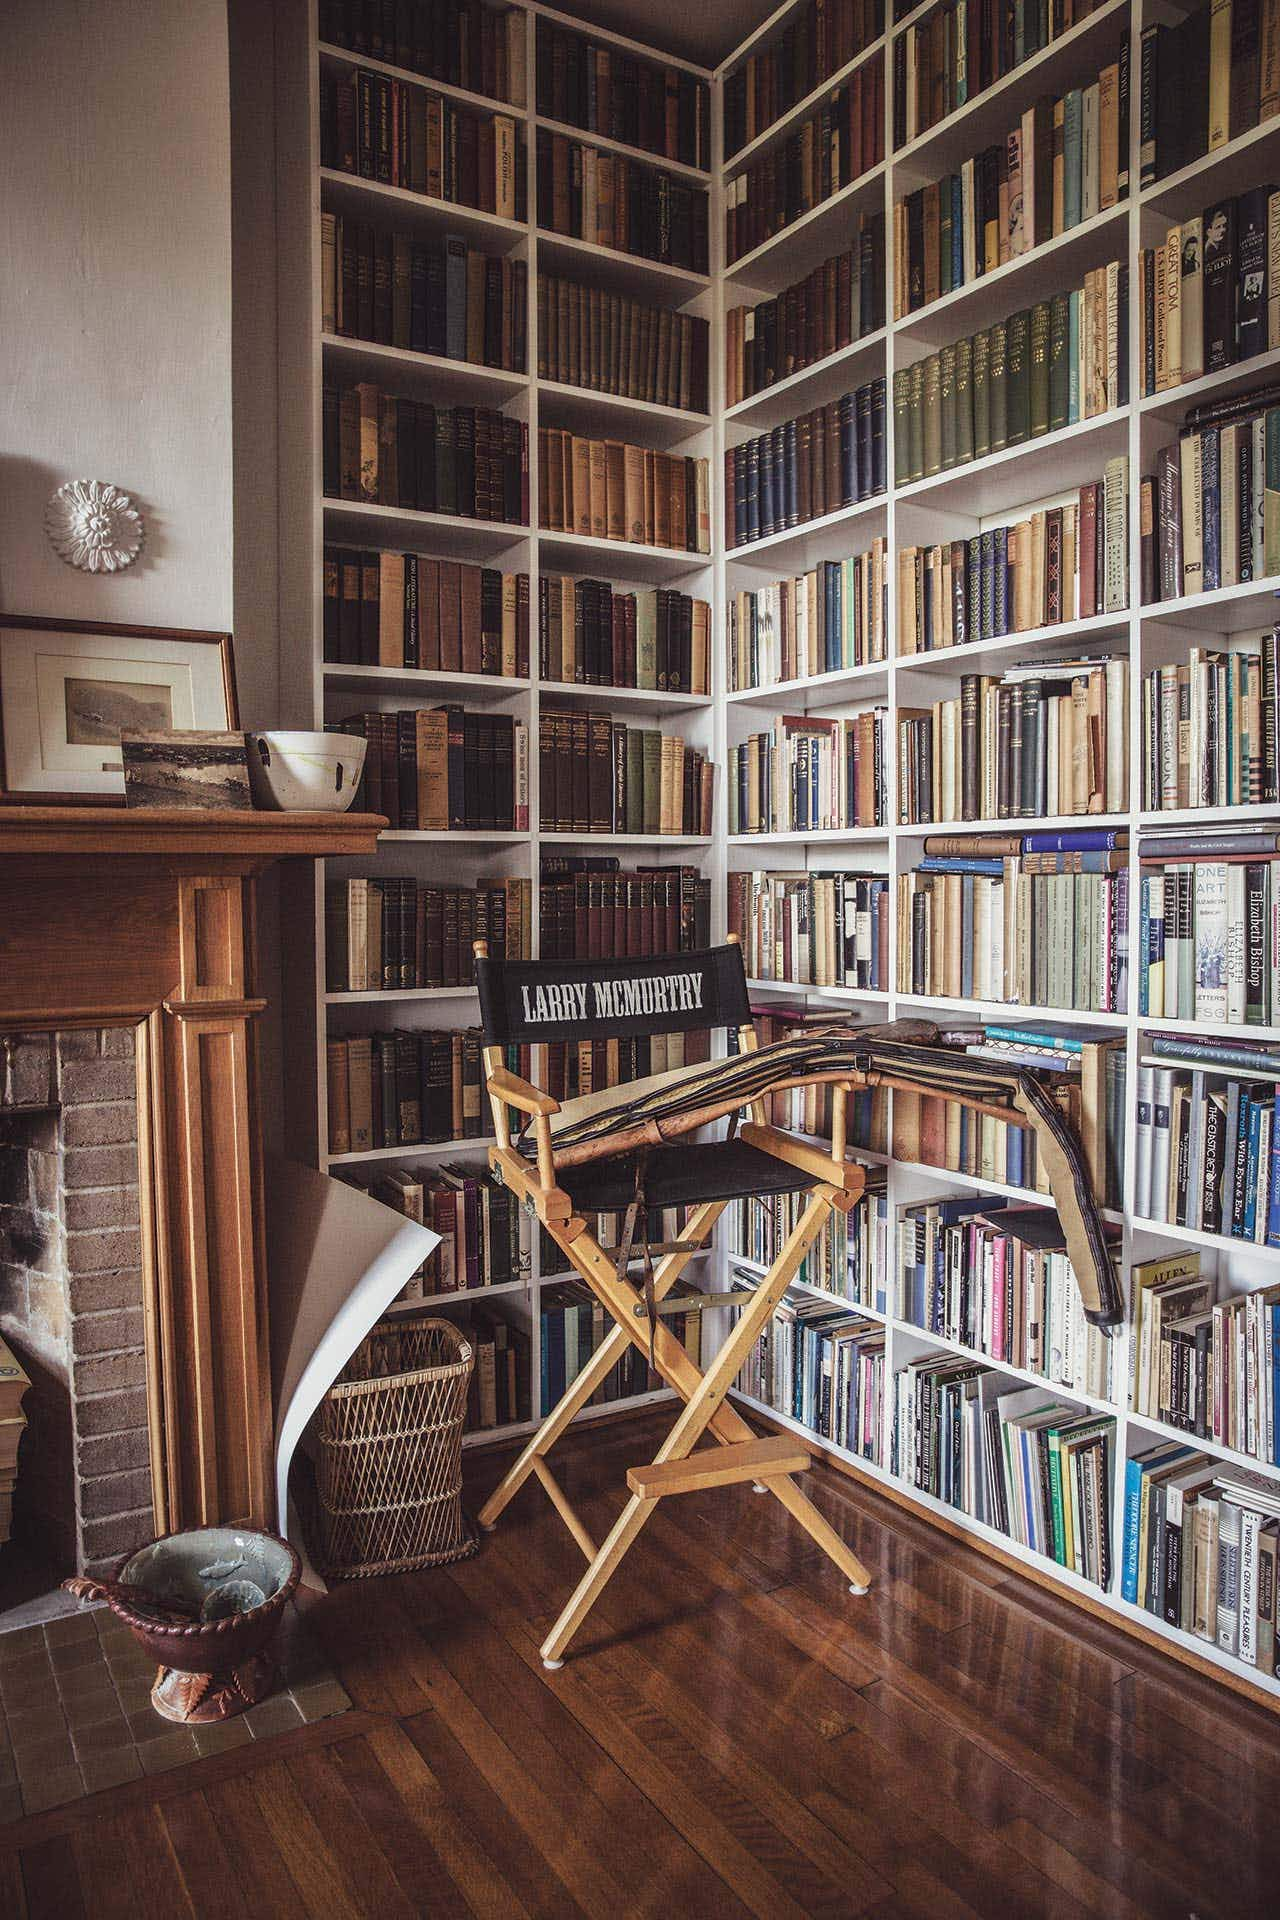 A view of one of the many floor-to-ceiling bookcases at his home in Archer City.